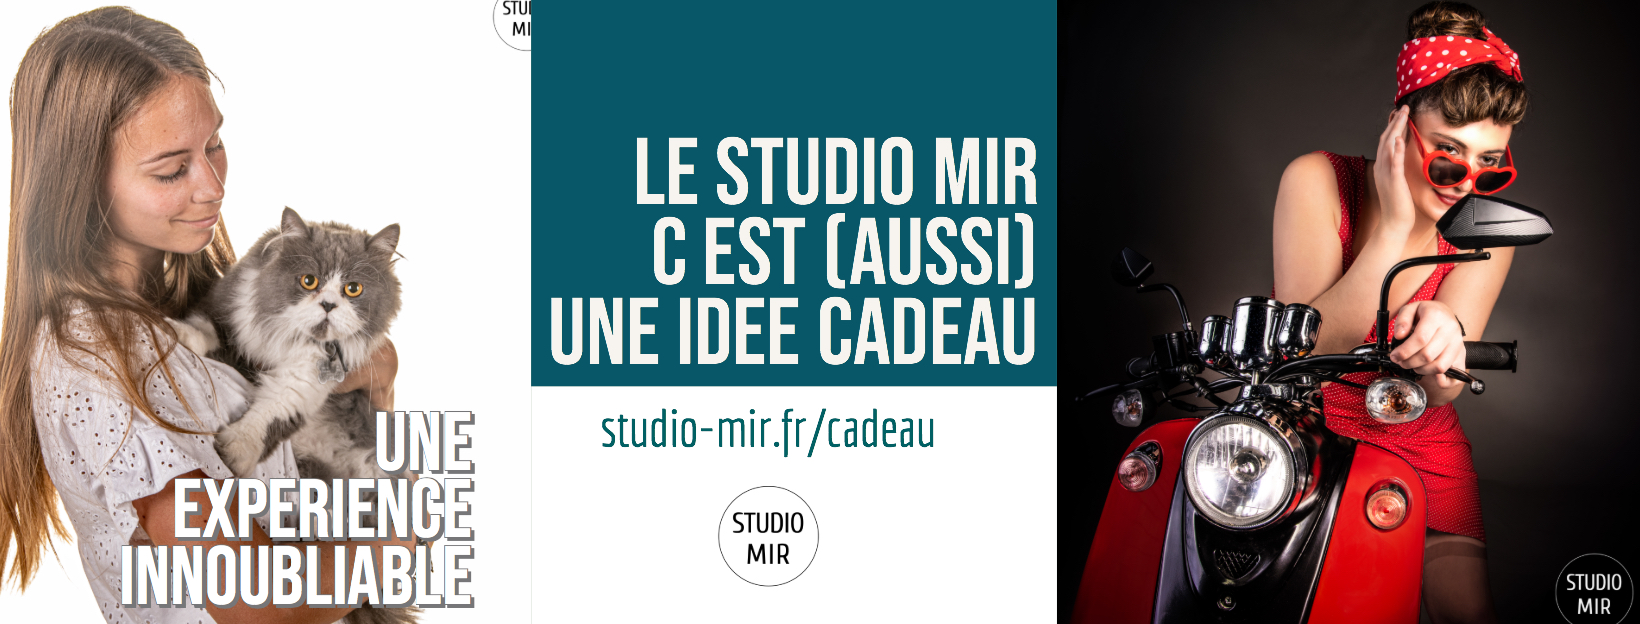 bon-cedeau-studio-shooting